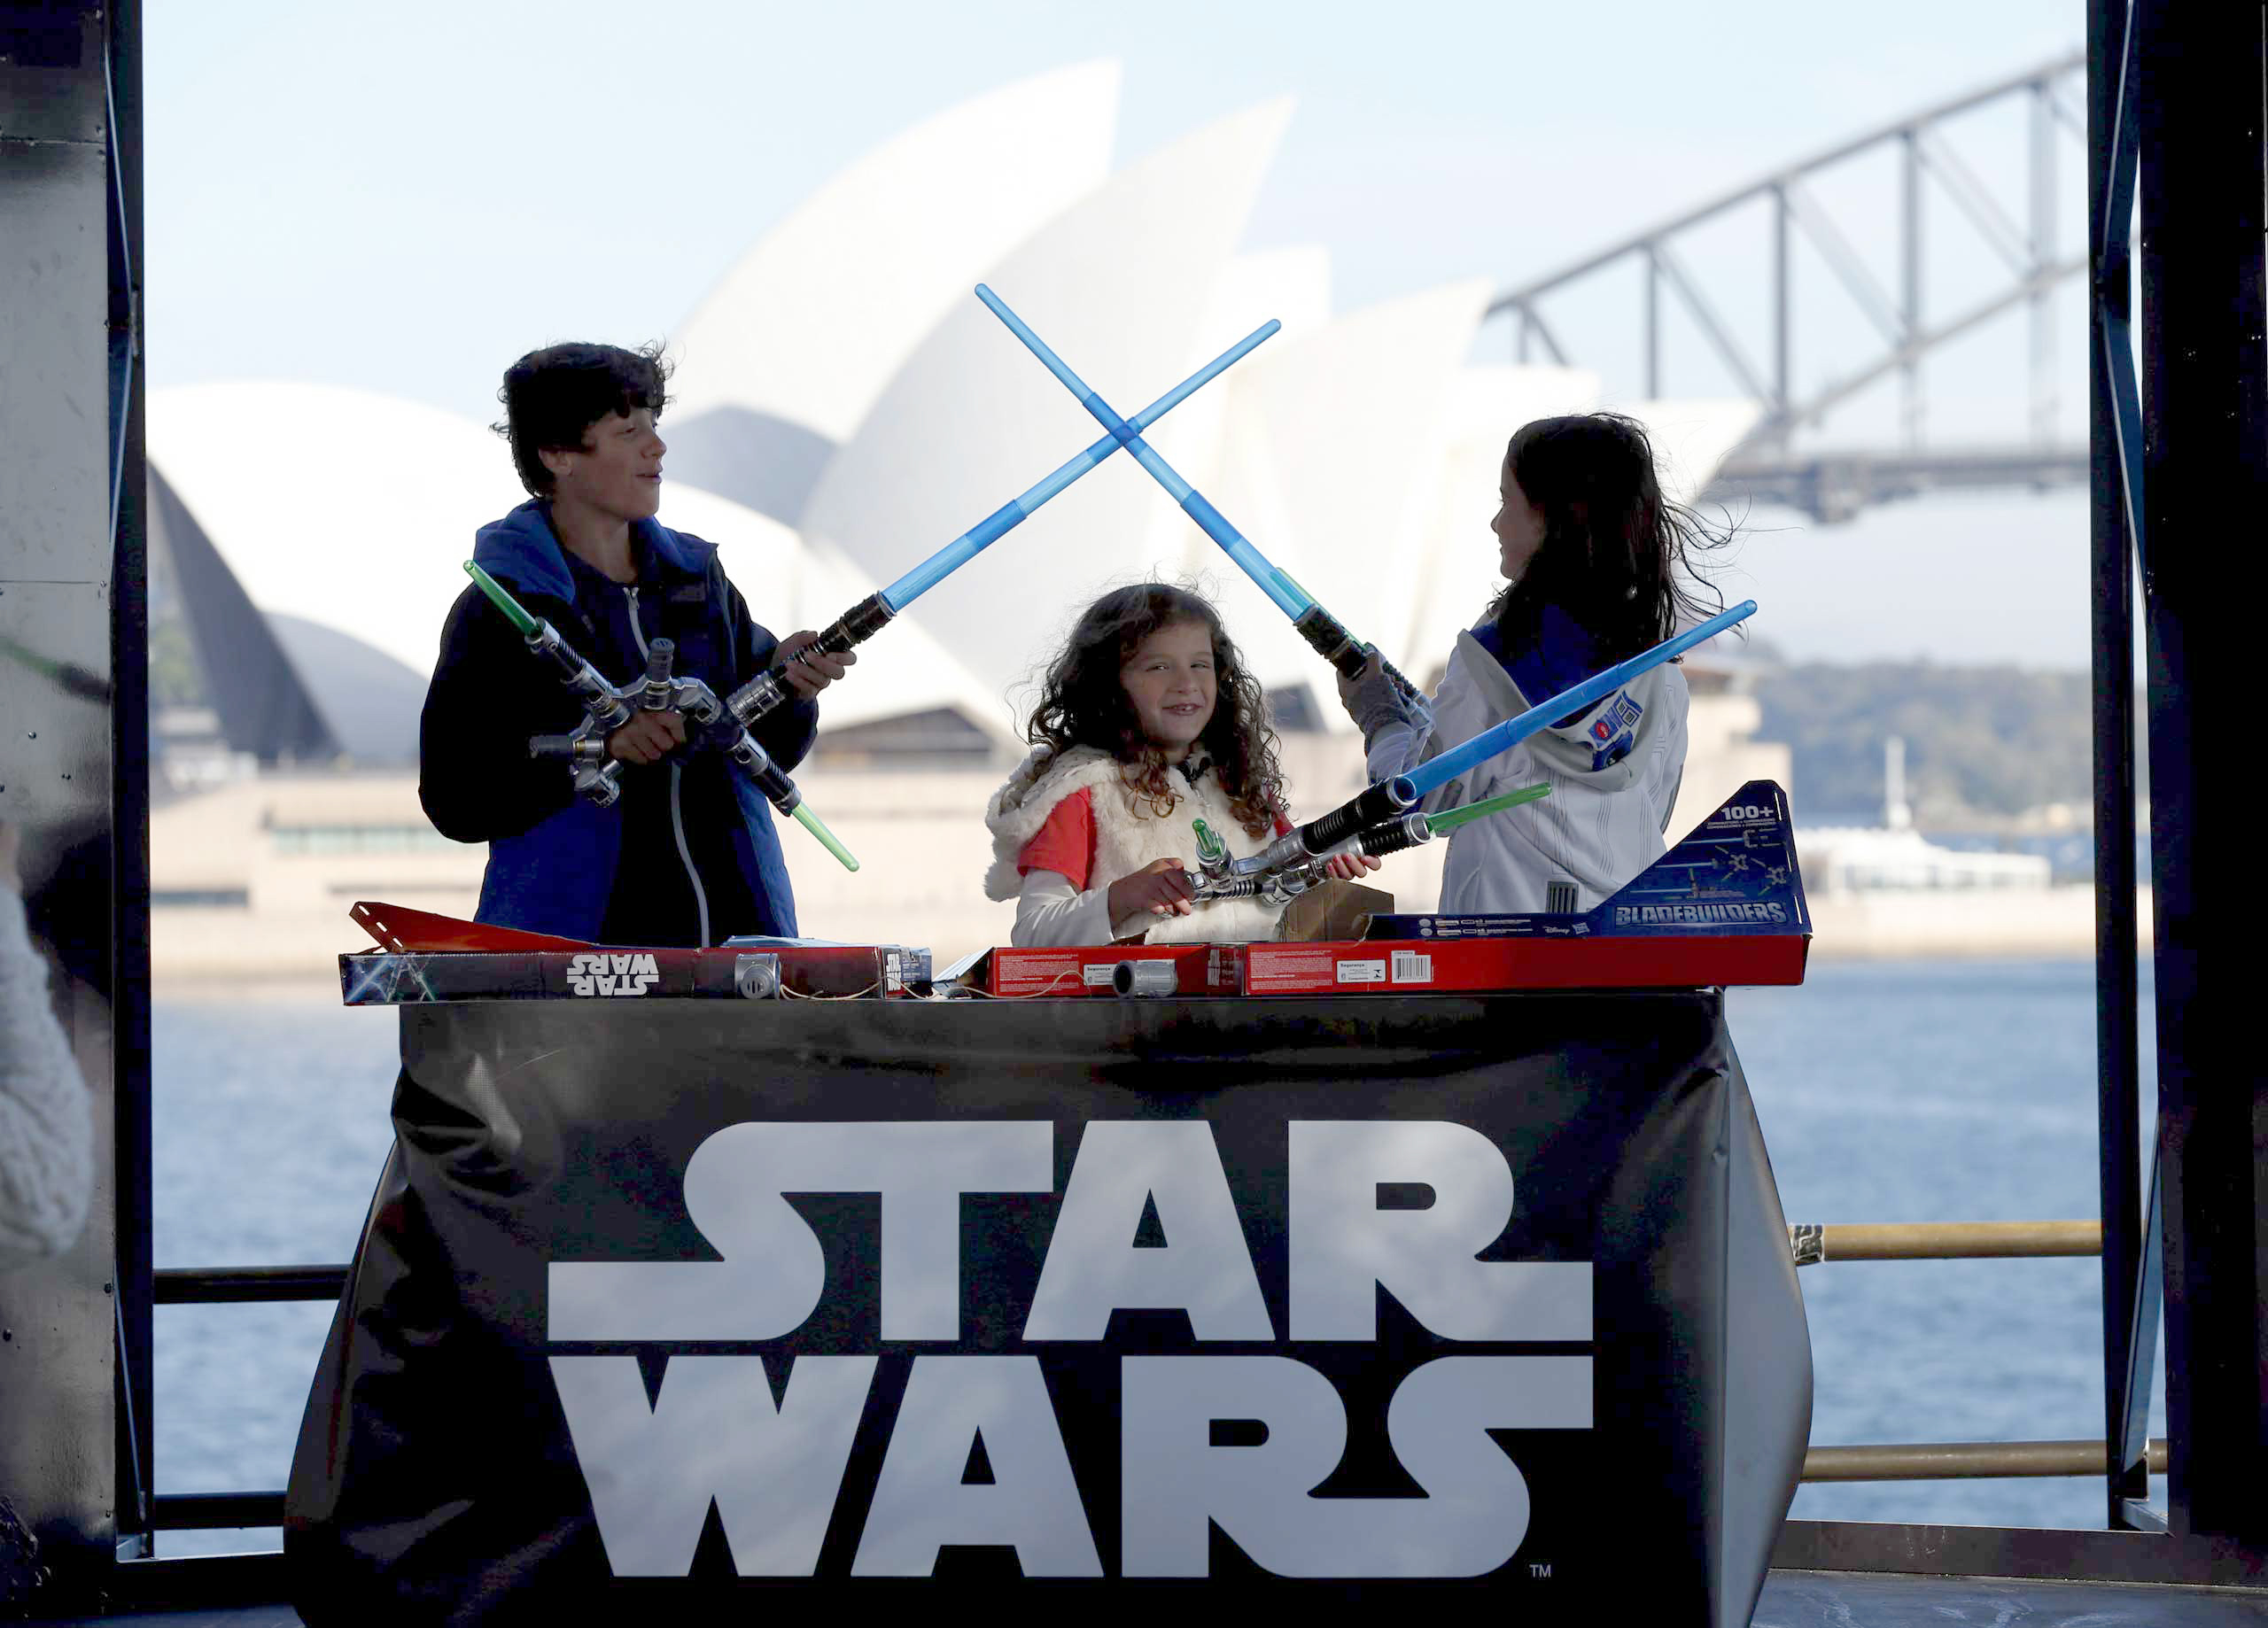 Caleb (L-R), Kayley and Annie Bratayley from the United States participate in a live internet unboxing event to reveal new light saber toys from the film  Star Wars - The Force Awakens  in Sydney, Sept. 3, 2015.